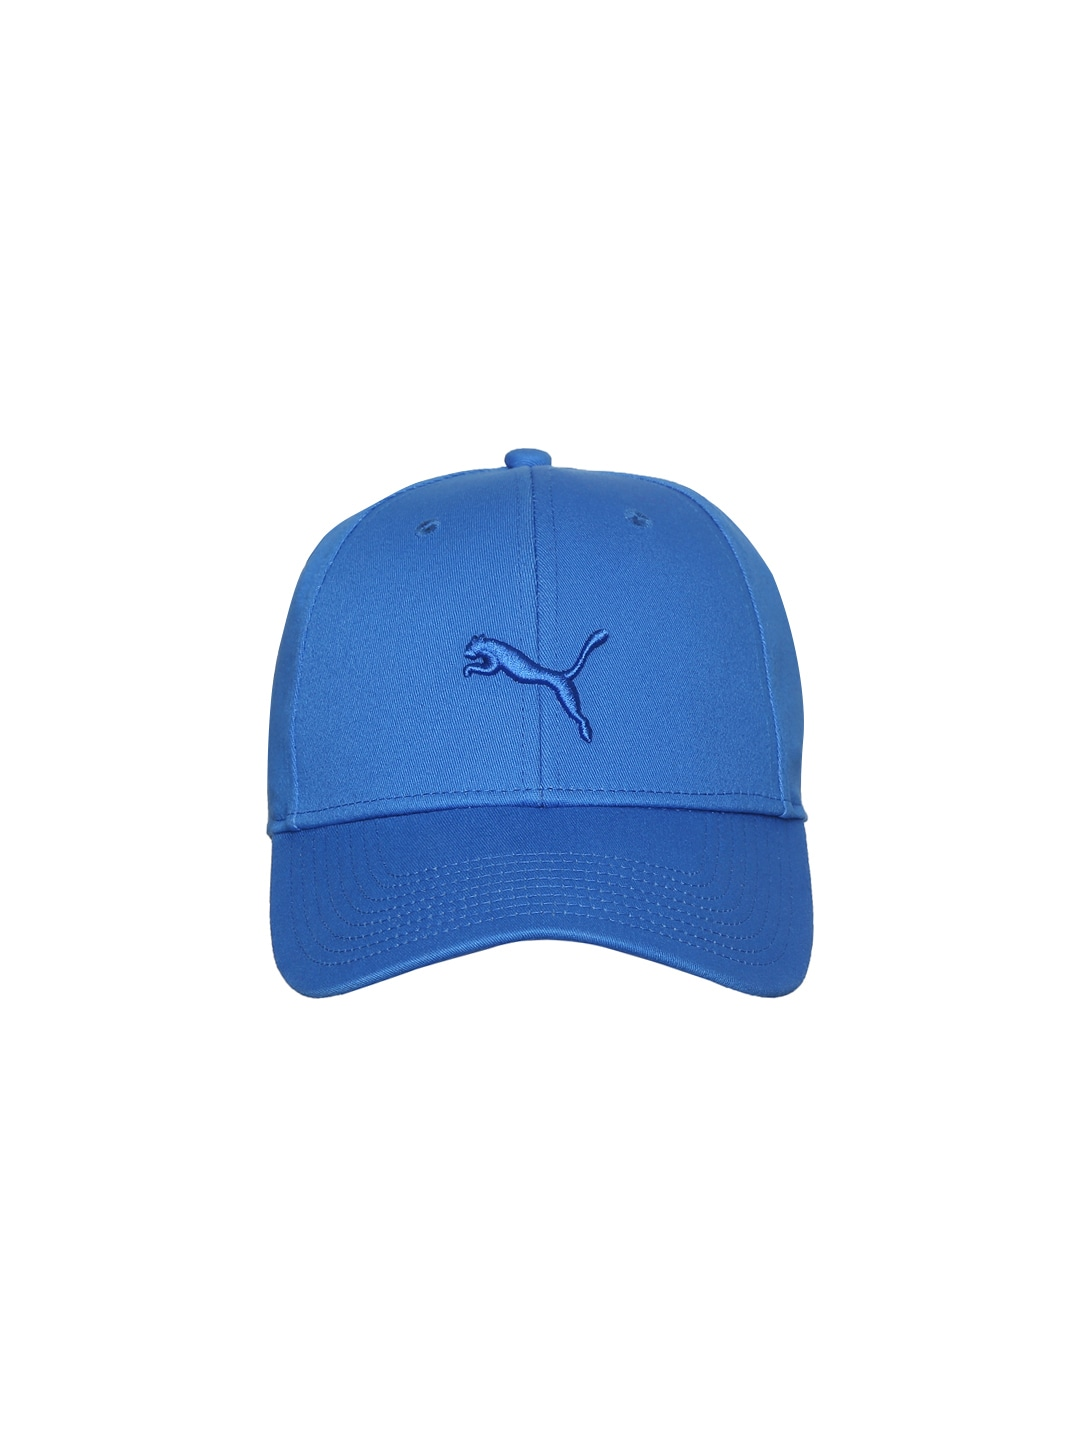 Baseball Cap - Shop for Baseball Caps Online in India  8604ceb9be7